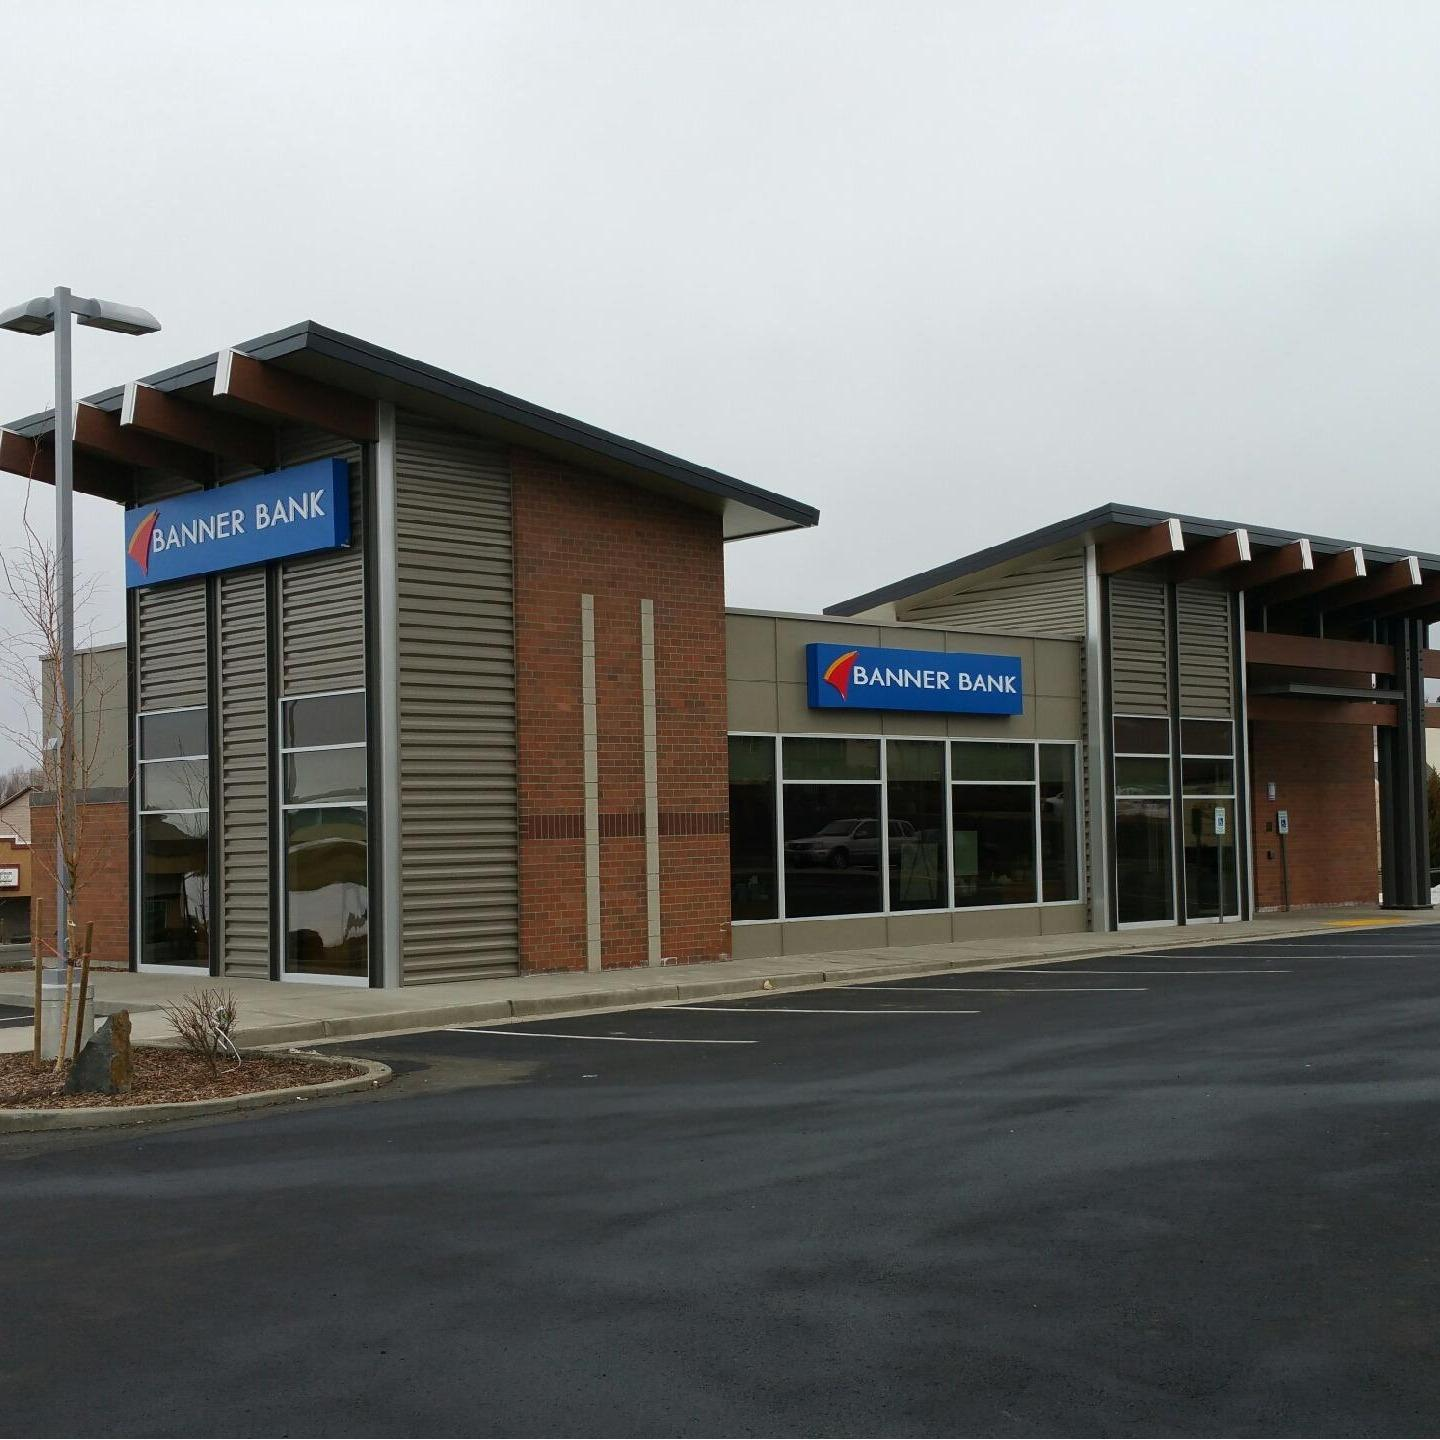 Banner Bank branch in Pullman, WA